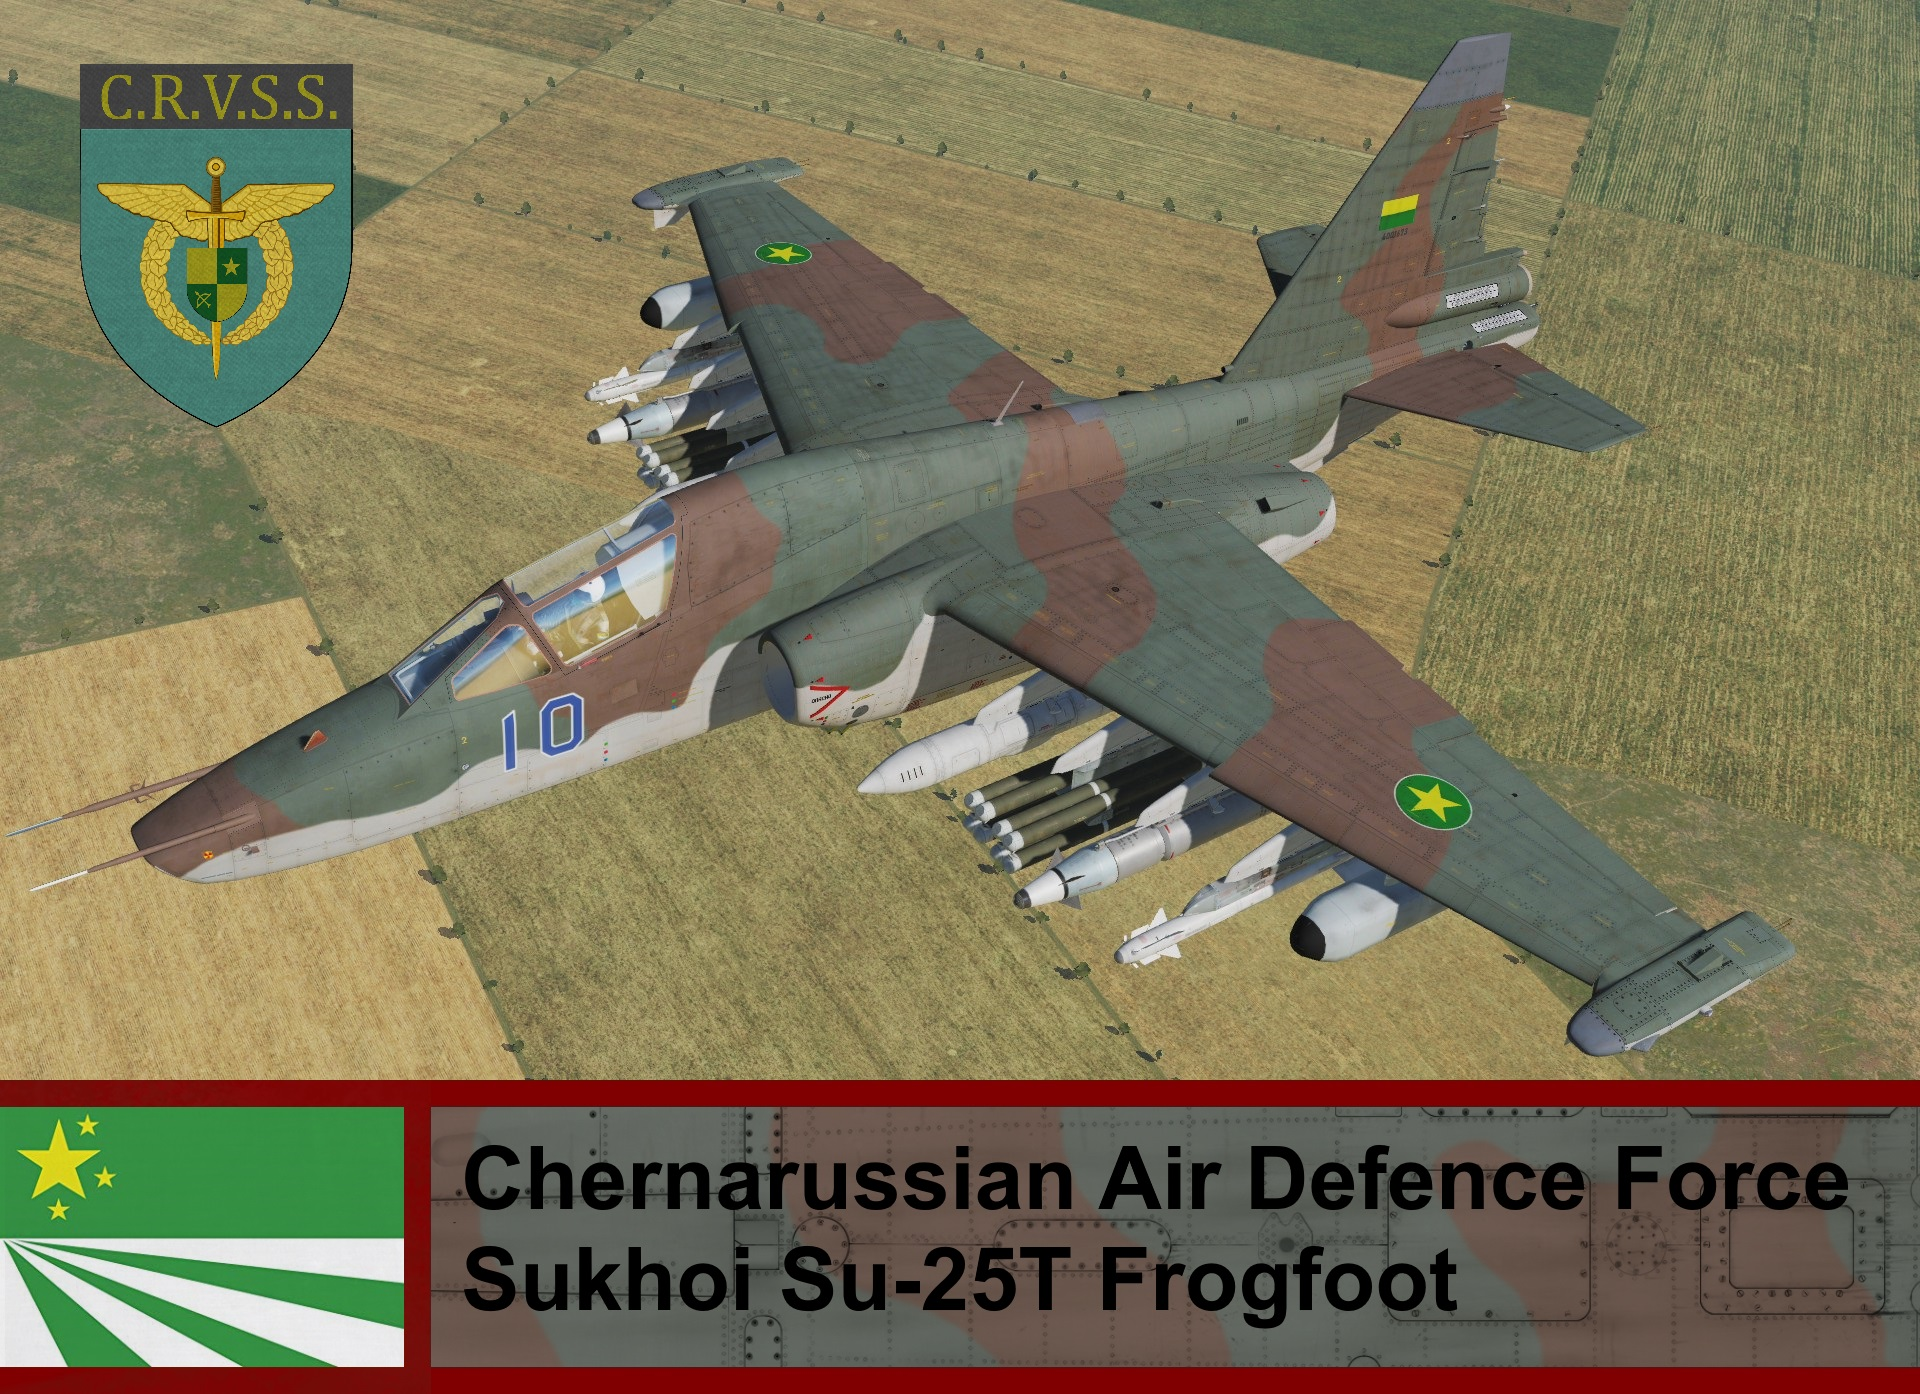 Chernarussian Air Defence Force SU-25T Frogfoot - ArmA II